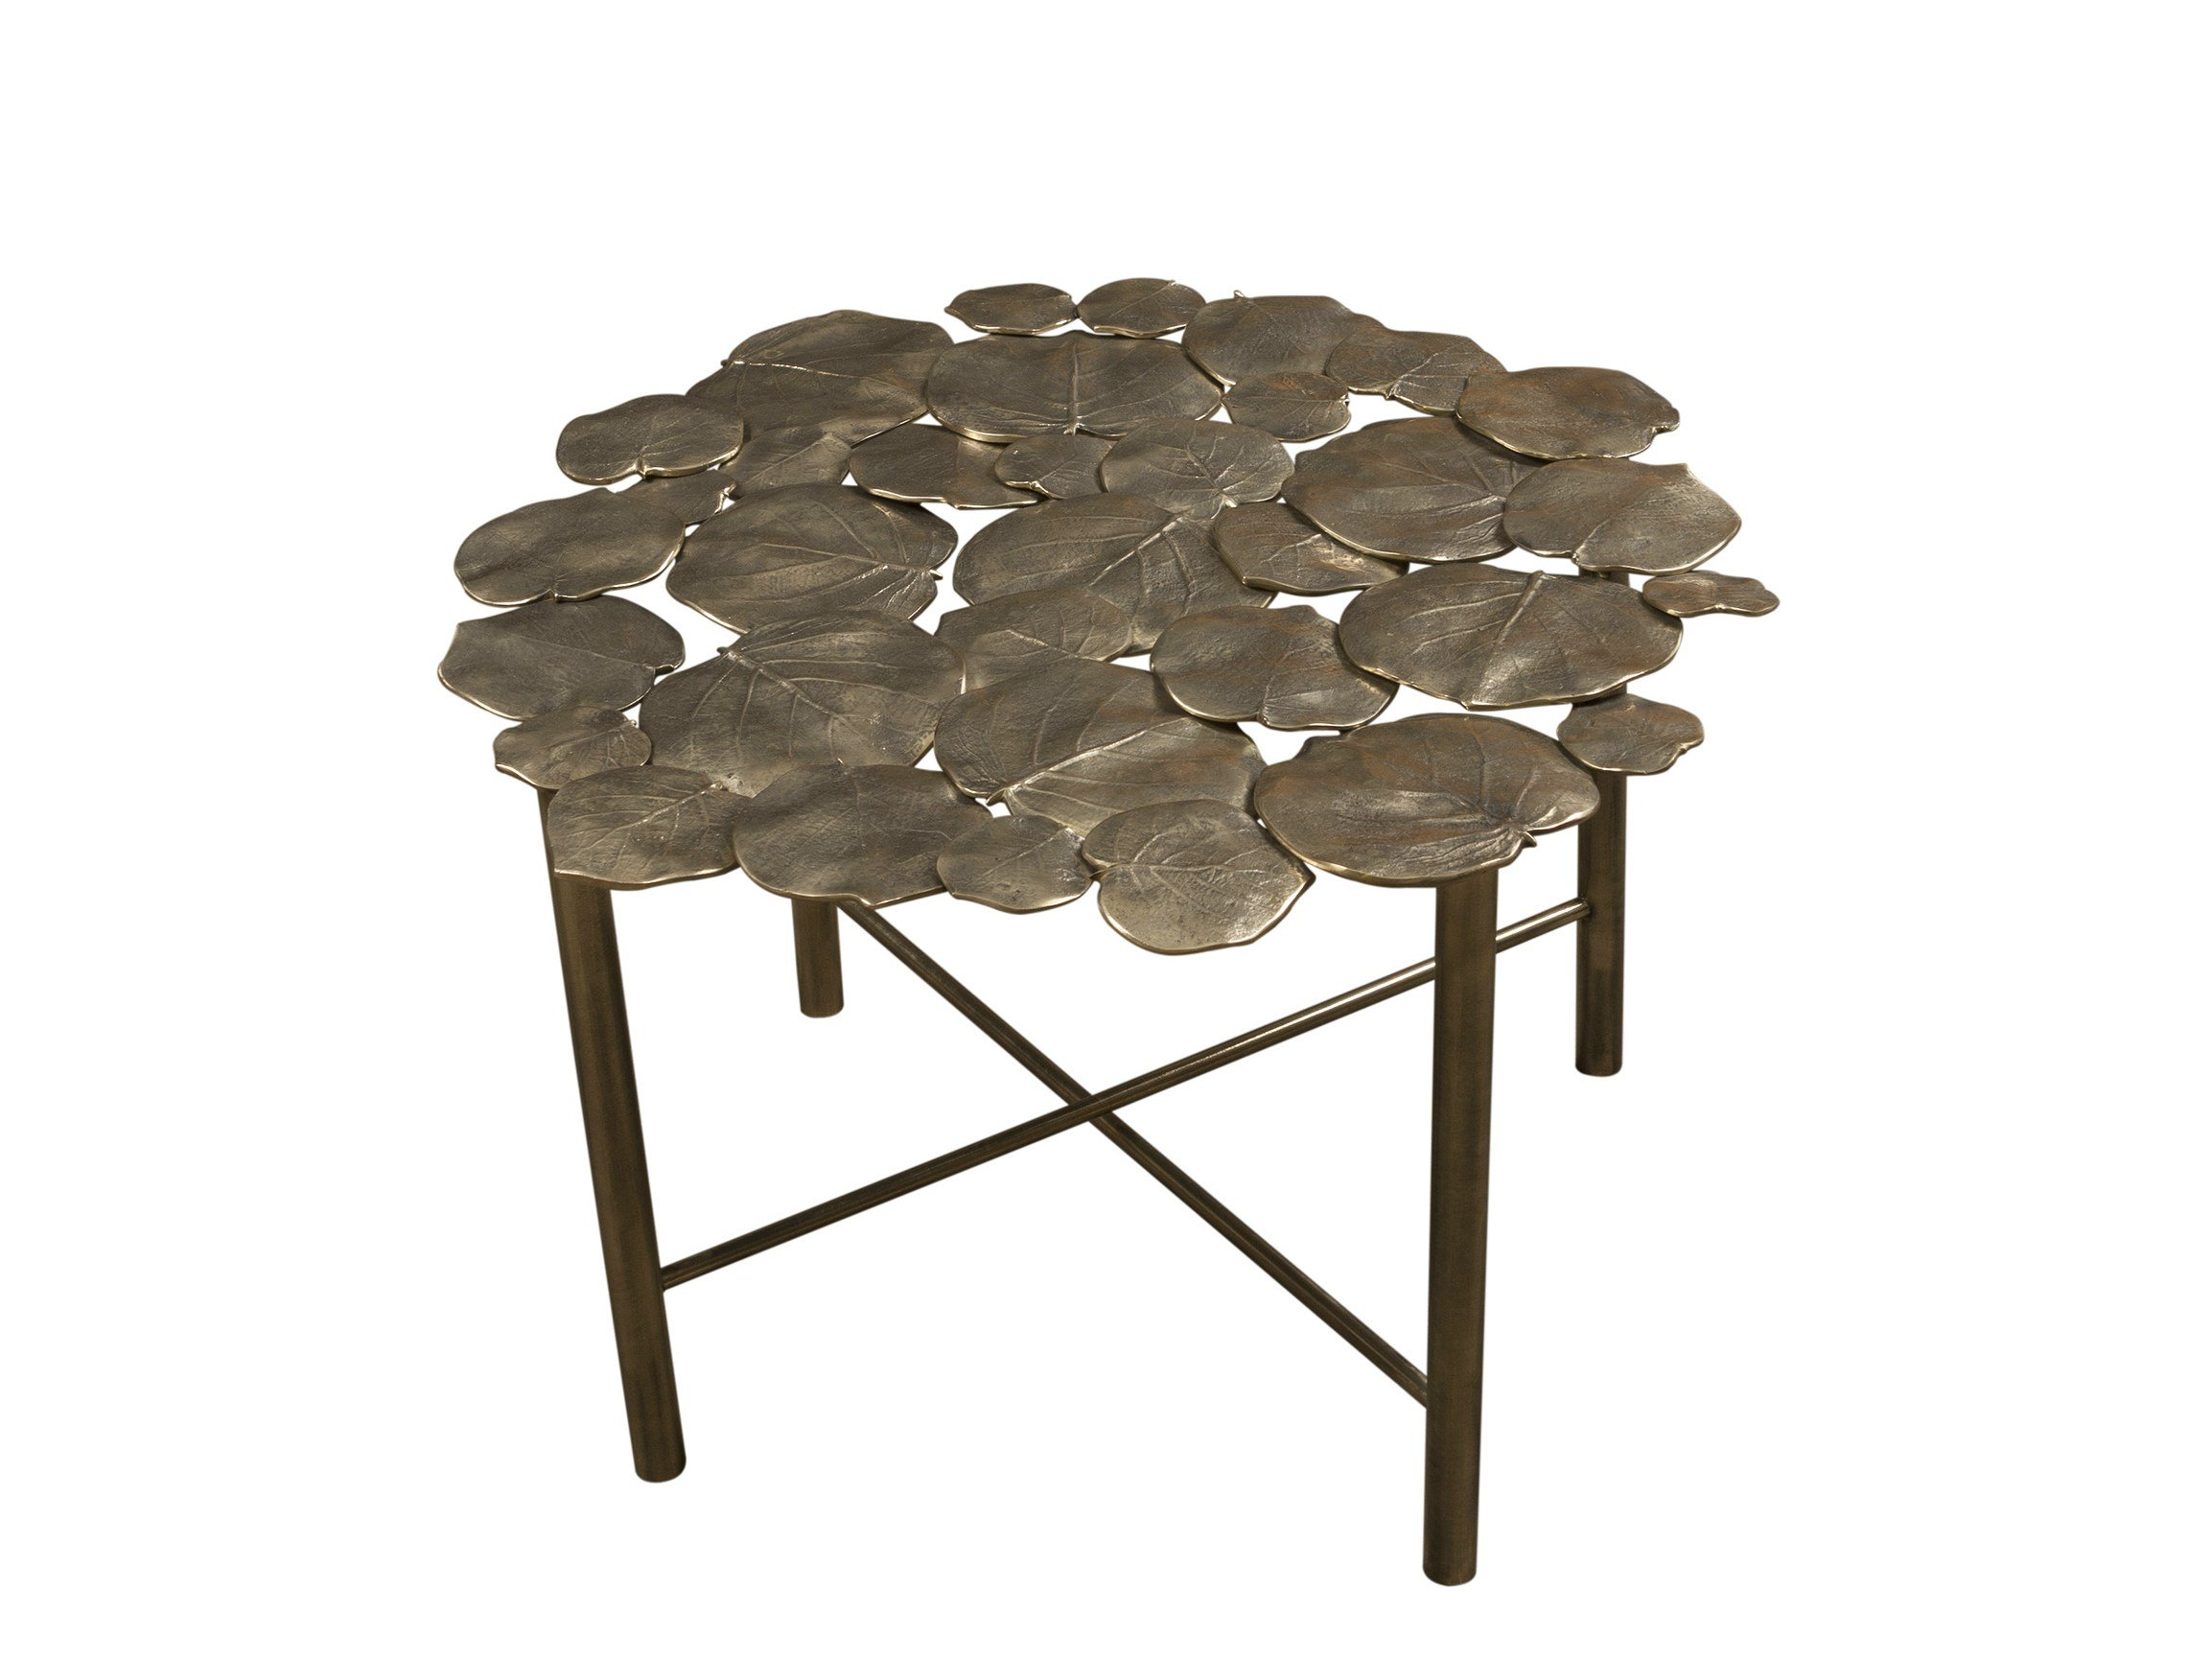 Low Round Metal Coffee Table Nymphea Round Nymphea Collection By Hamilton Conte Paris